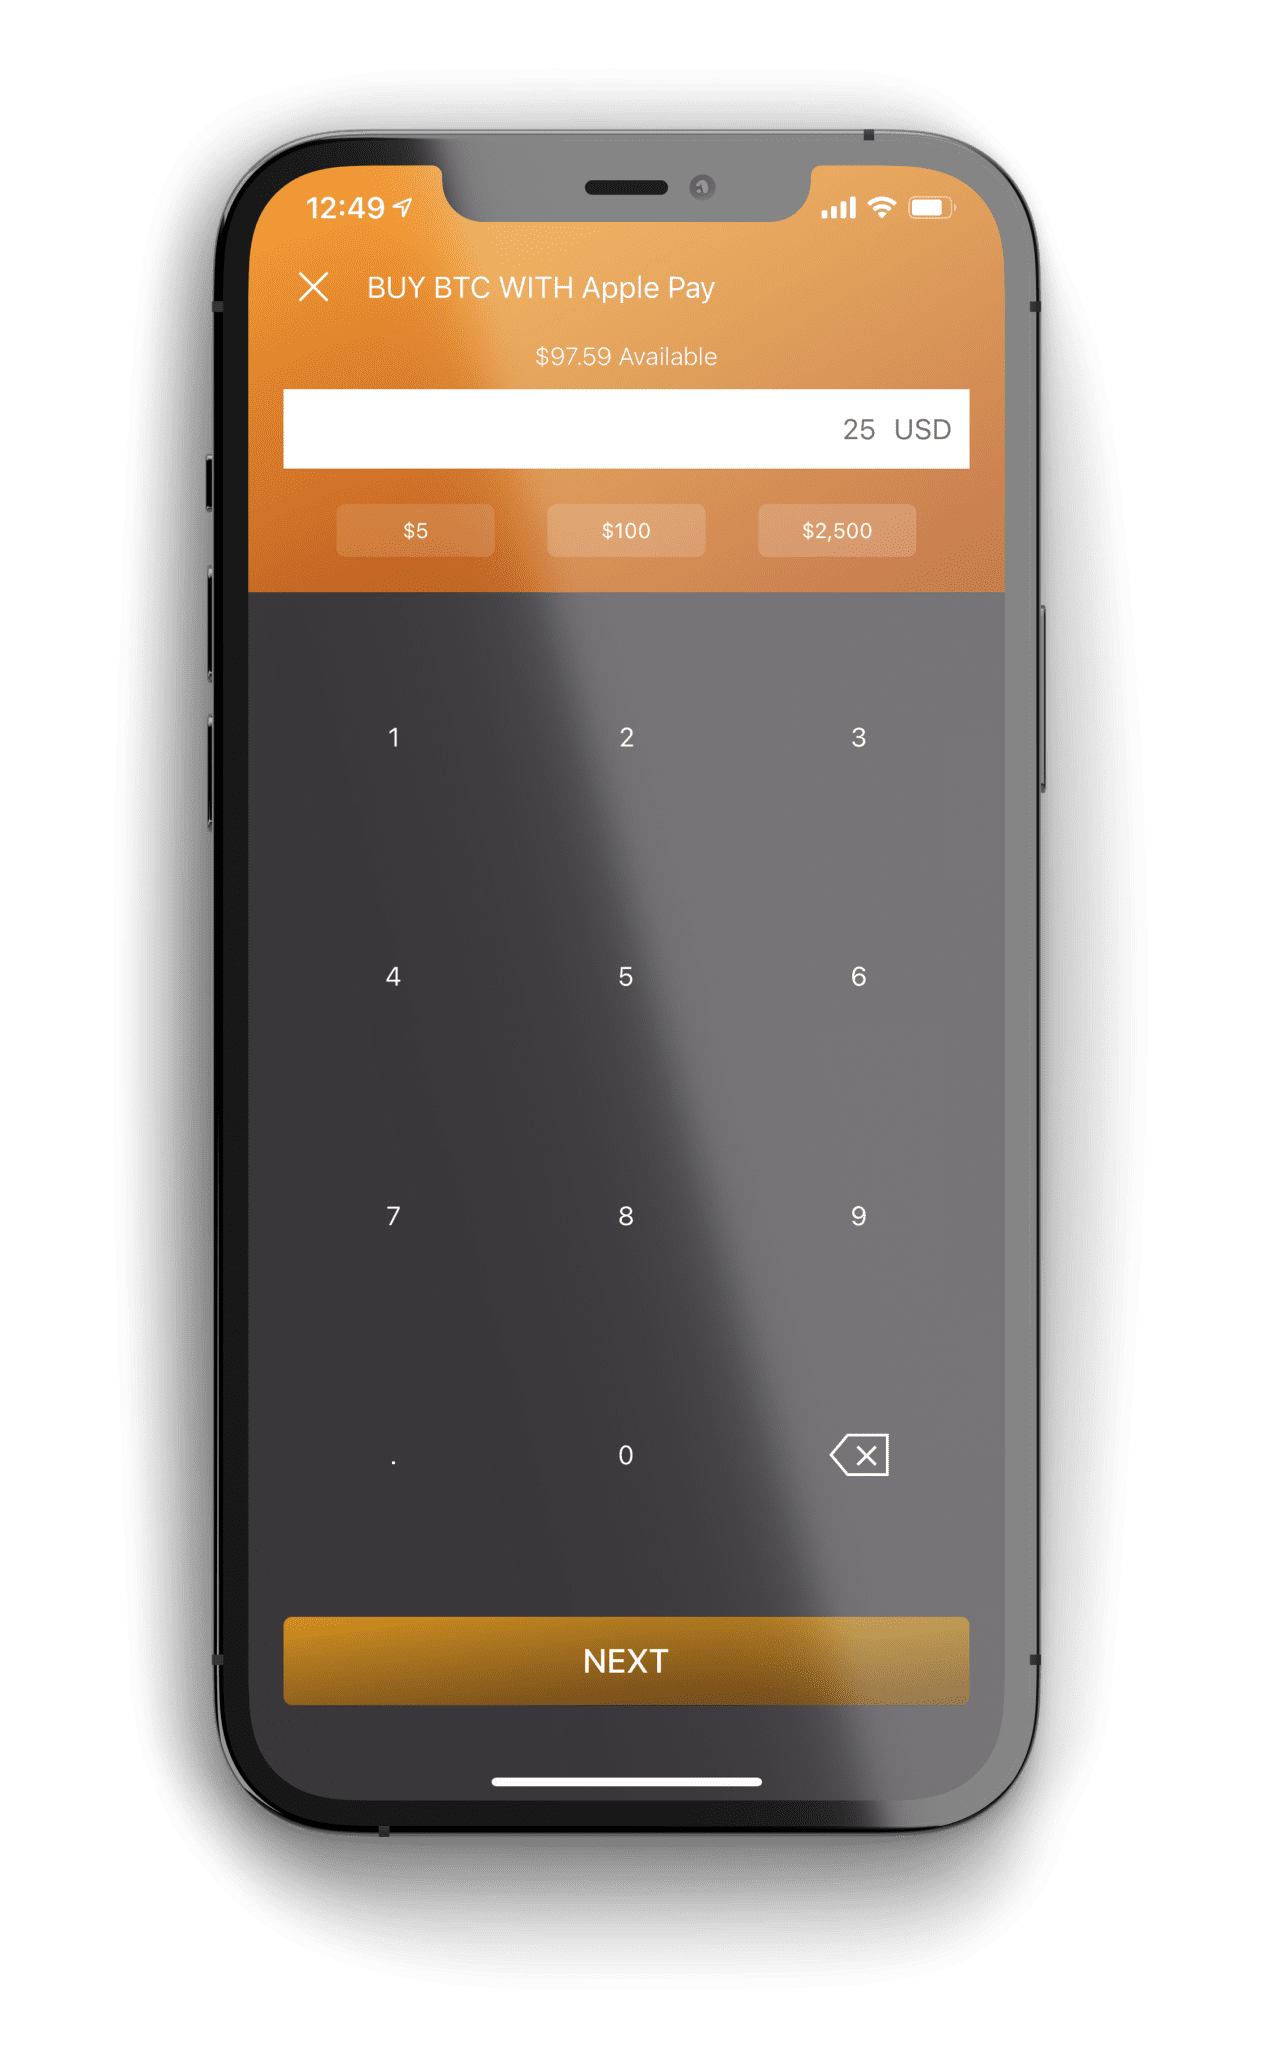 Monarch Wallet Purchase Amount Screen for Bitcoin